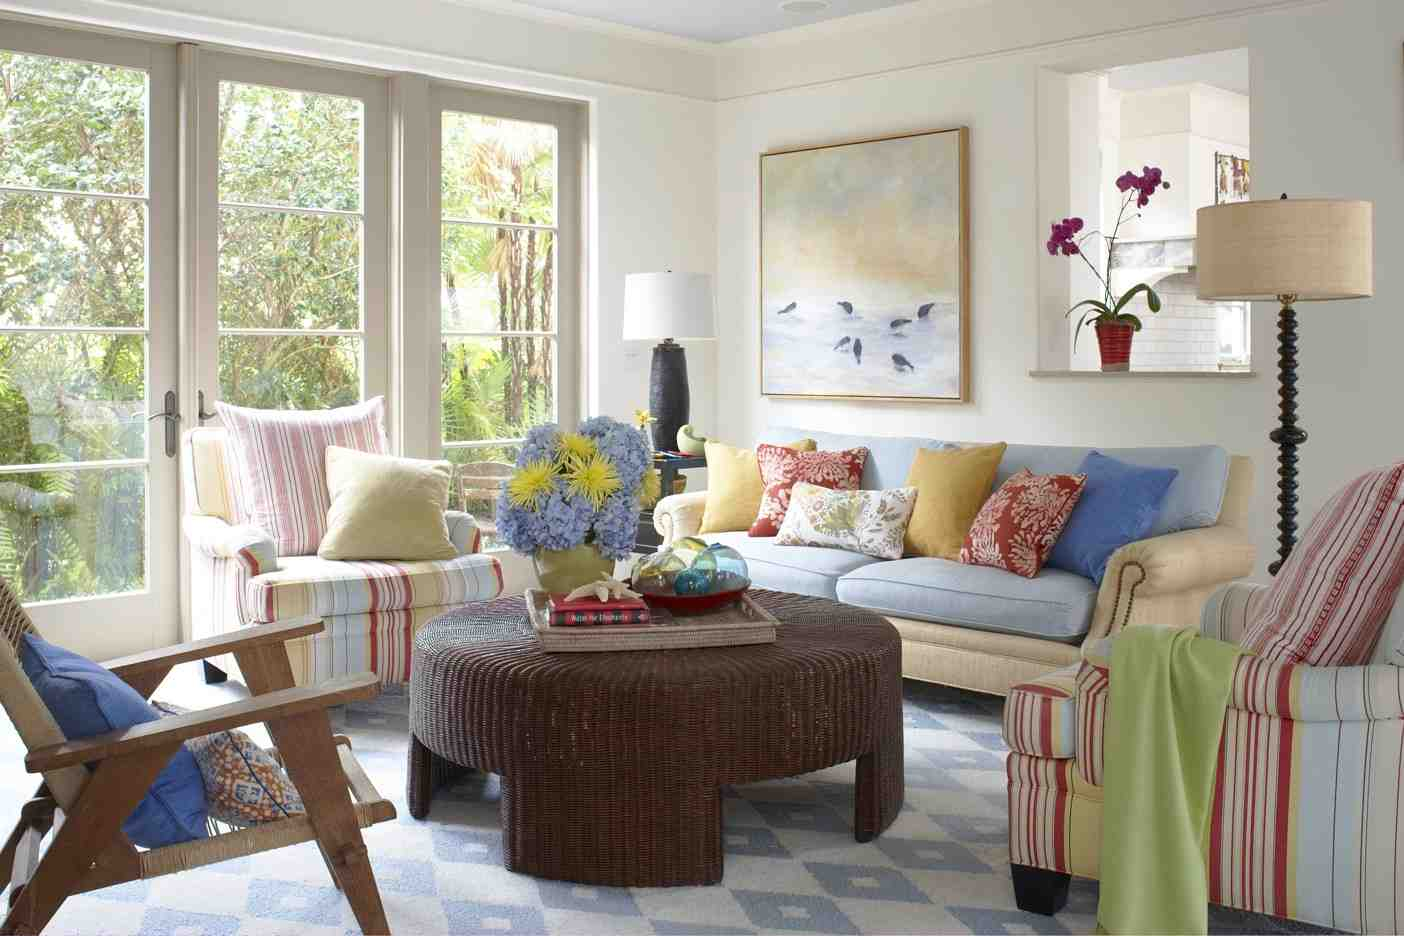 Delicieux Better Homes And Gardensu0027 Design Idea For Living Room With Colorful Sofa  Plus Multiple Color